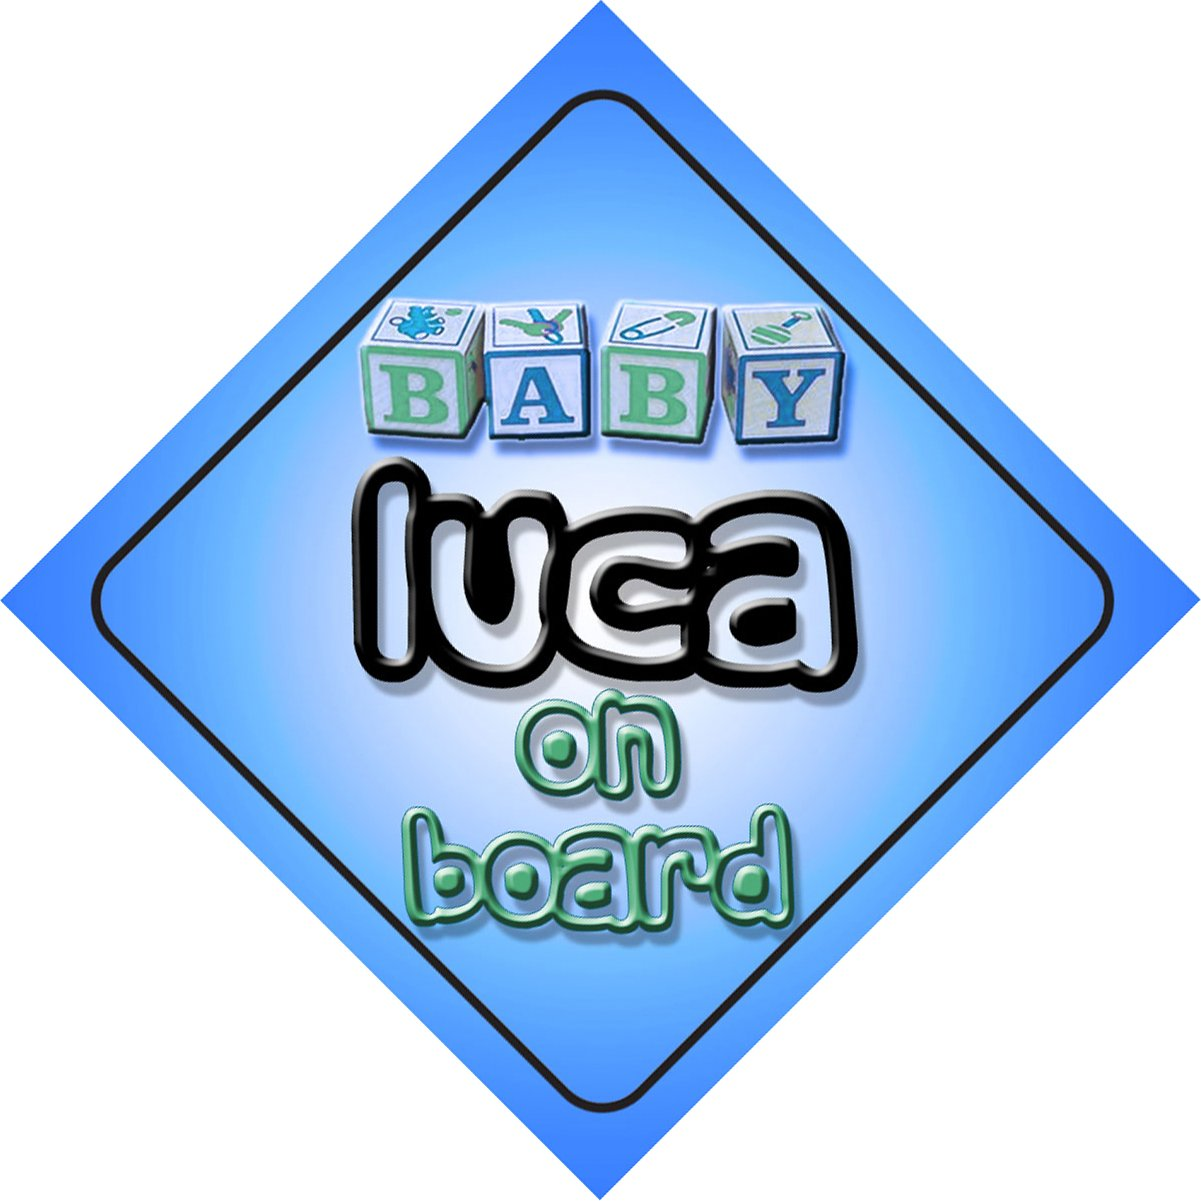 Baby Boy Luca on board novelty car sign gift / present for new child / newborn baby Quality Goods Ltd